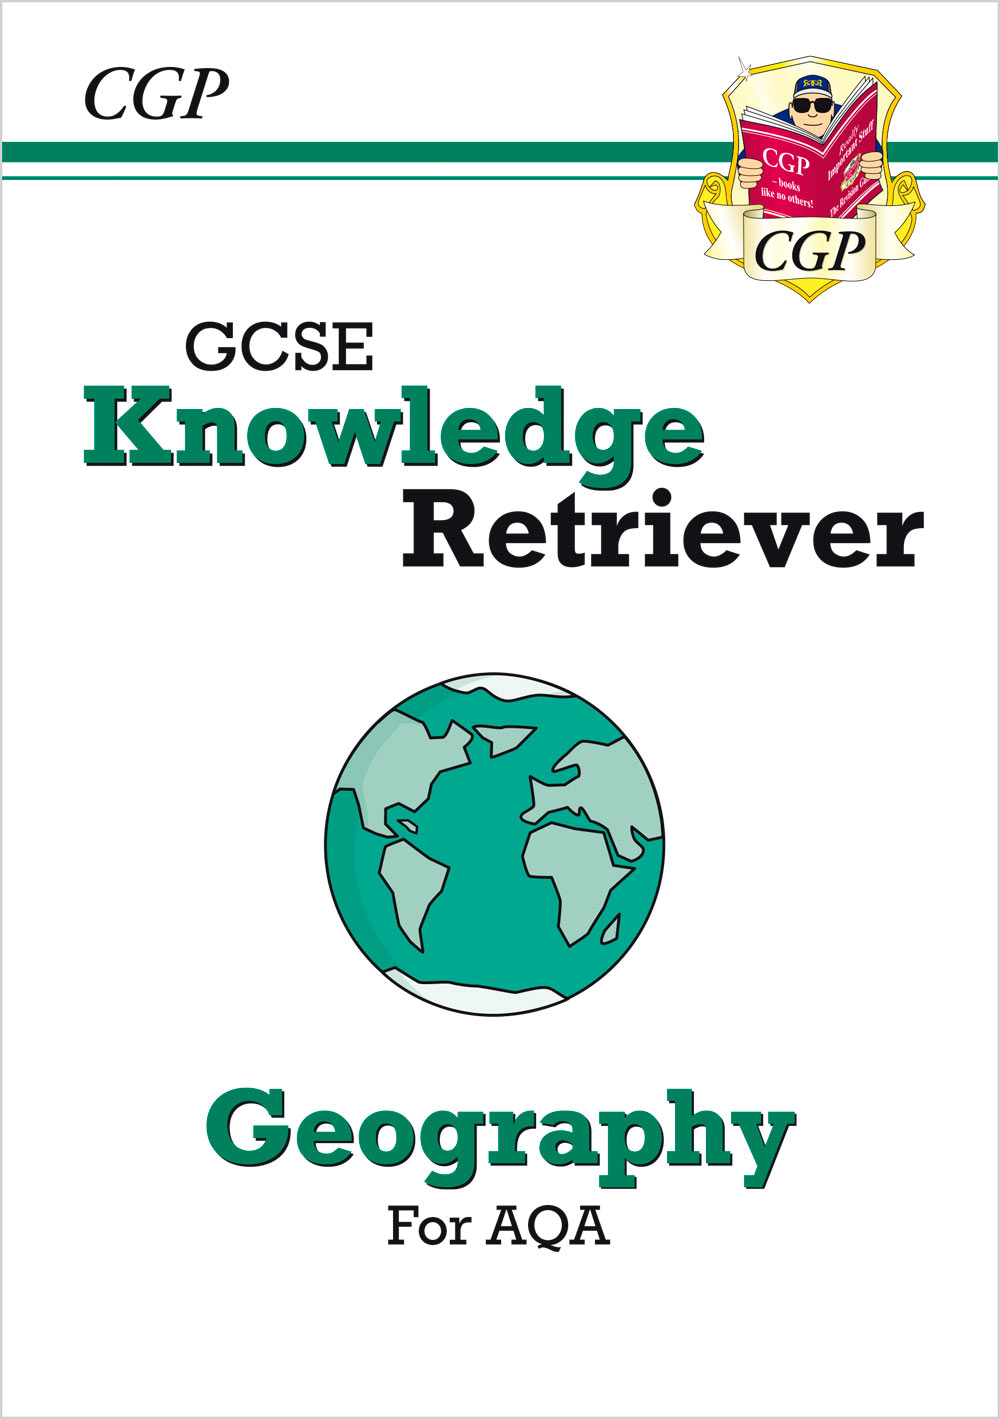 GANR41 - New GCSE Geography Knowledge Retriever - AQA